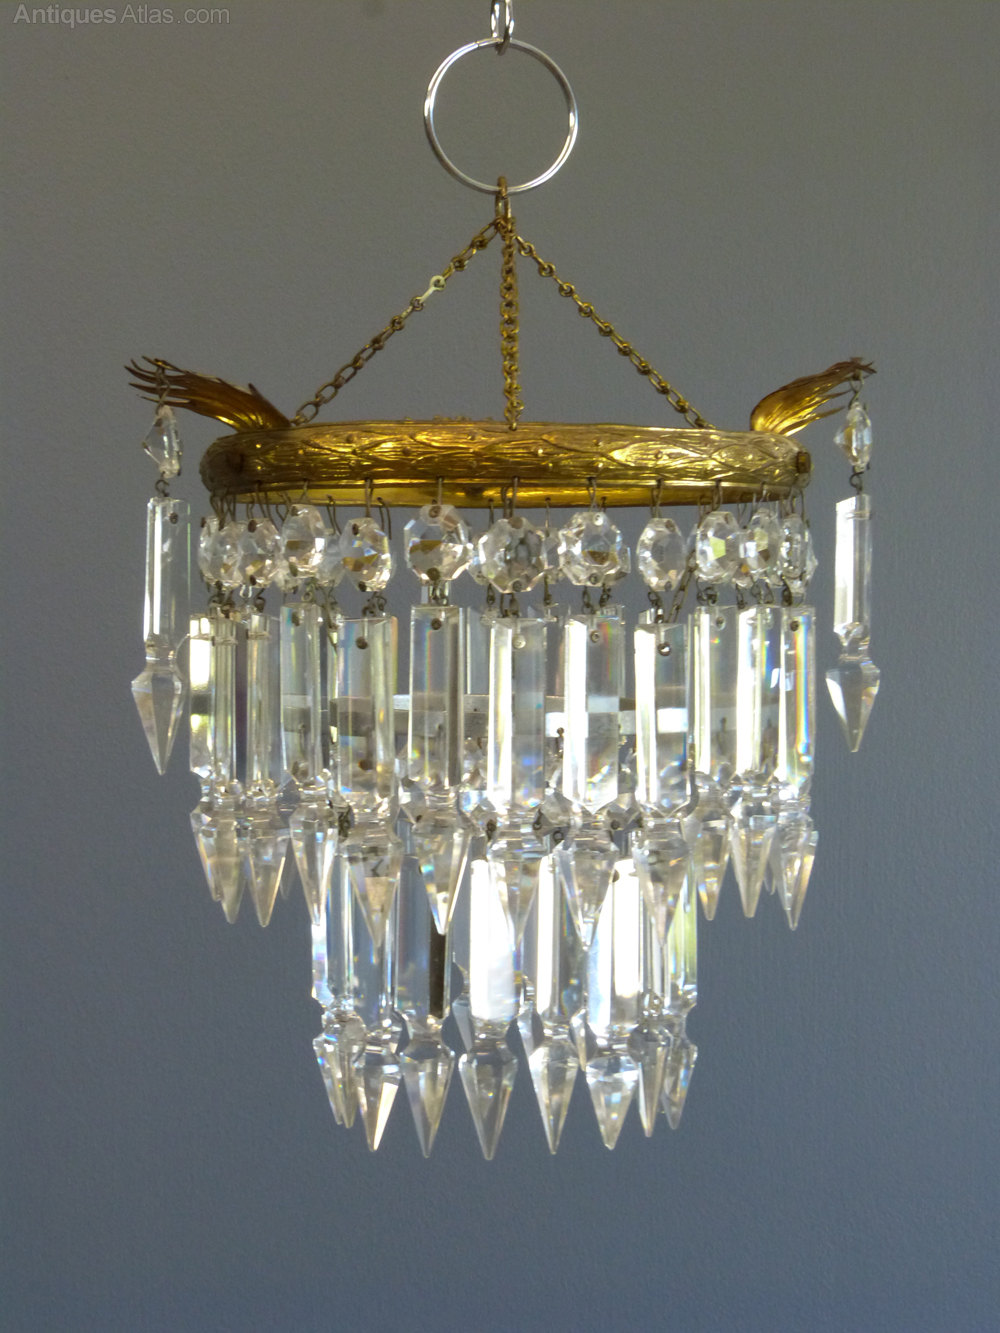 Antiques atlas 1930s small albert drop chandelier 1930s small albert drop chandelier mozeypictures Gallery